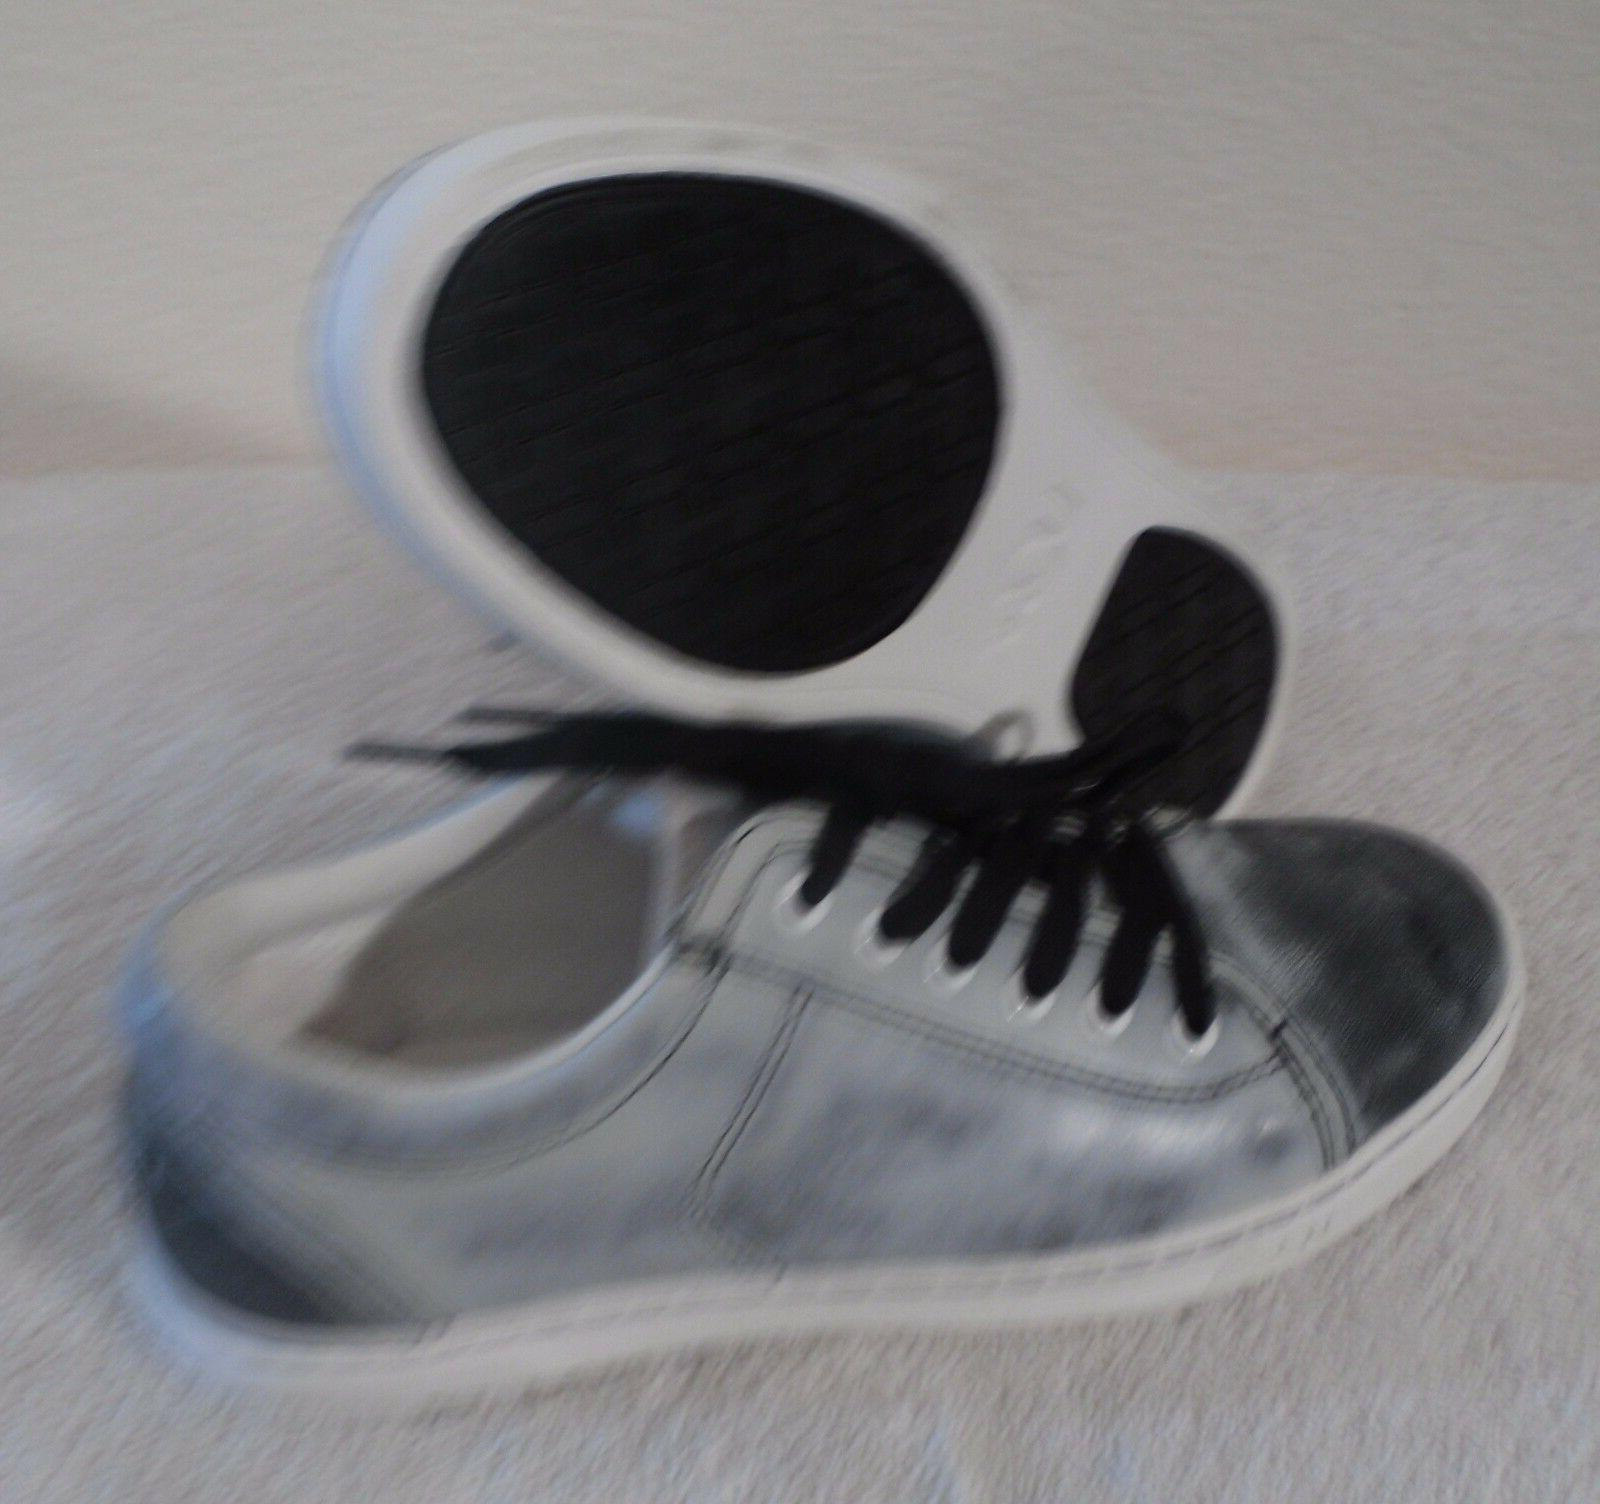 NEW UGG Tomi Water Resistant Leather Sneakers Shoes 7 Black/White